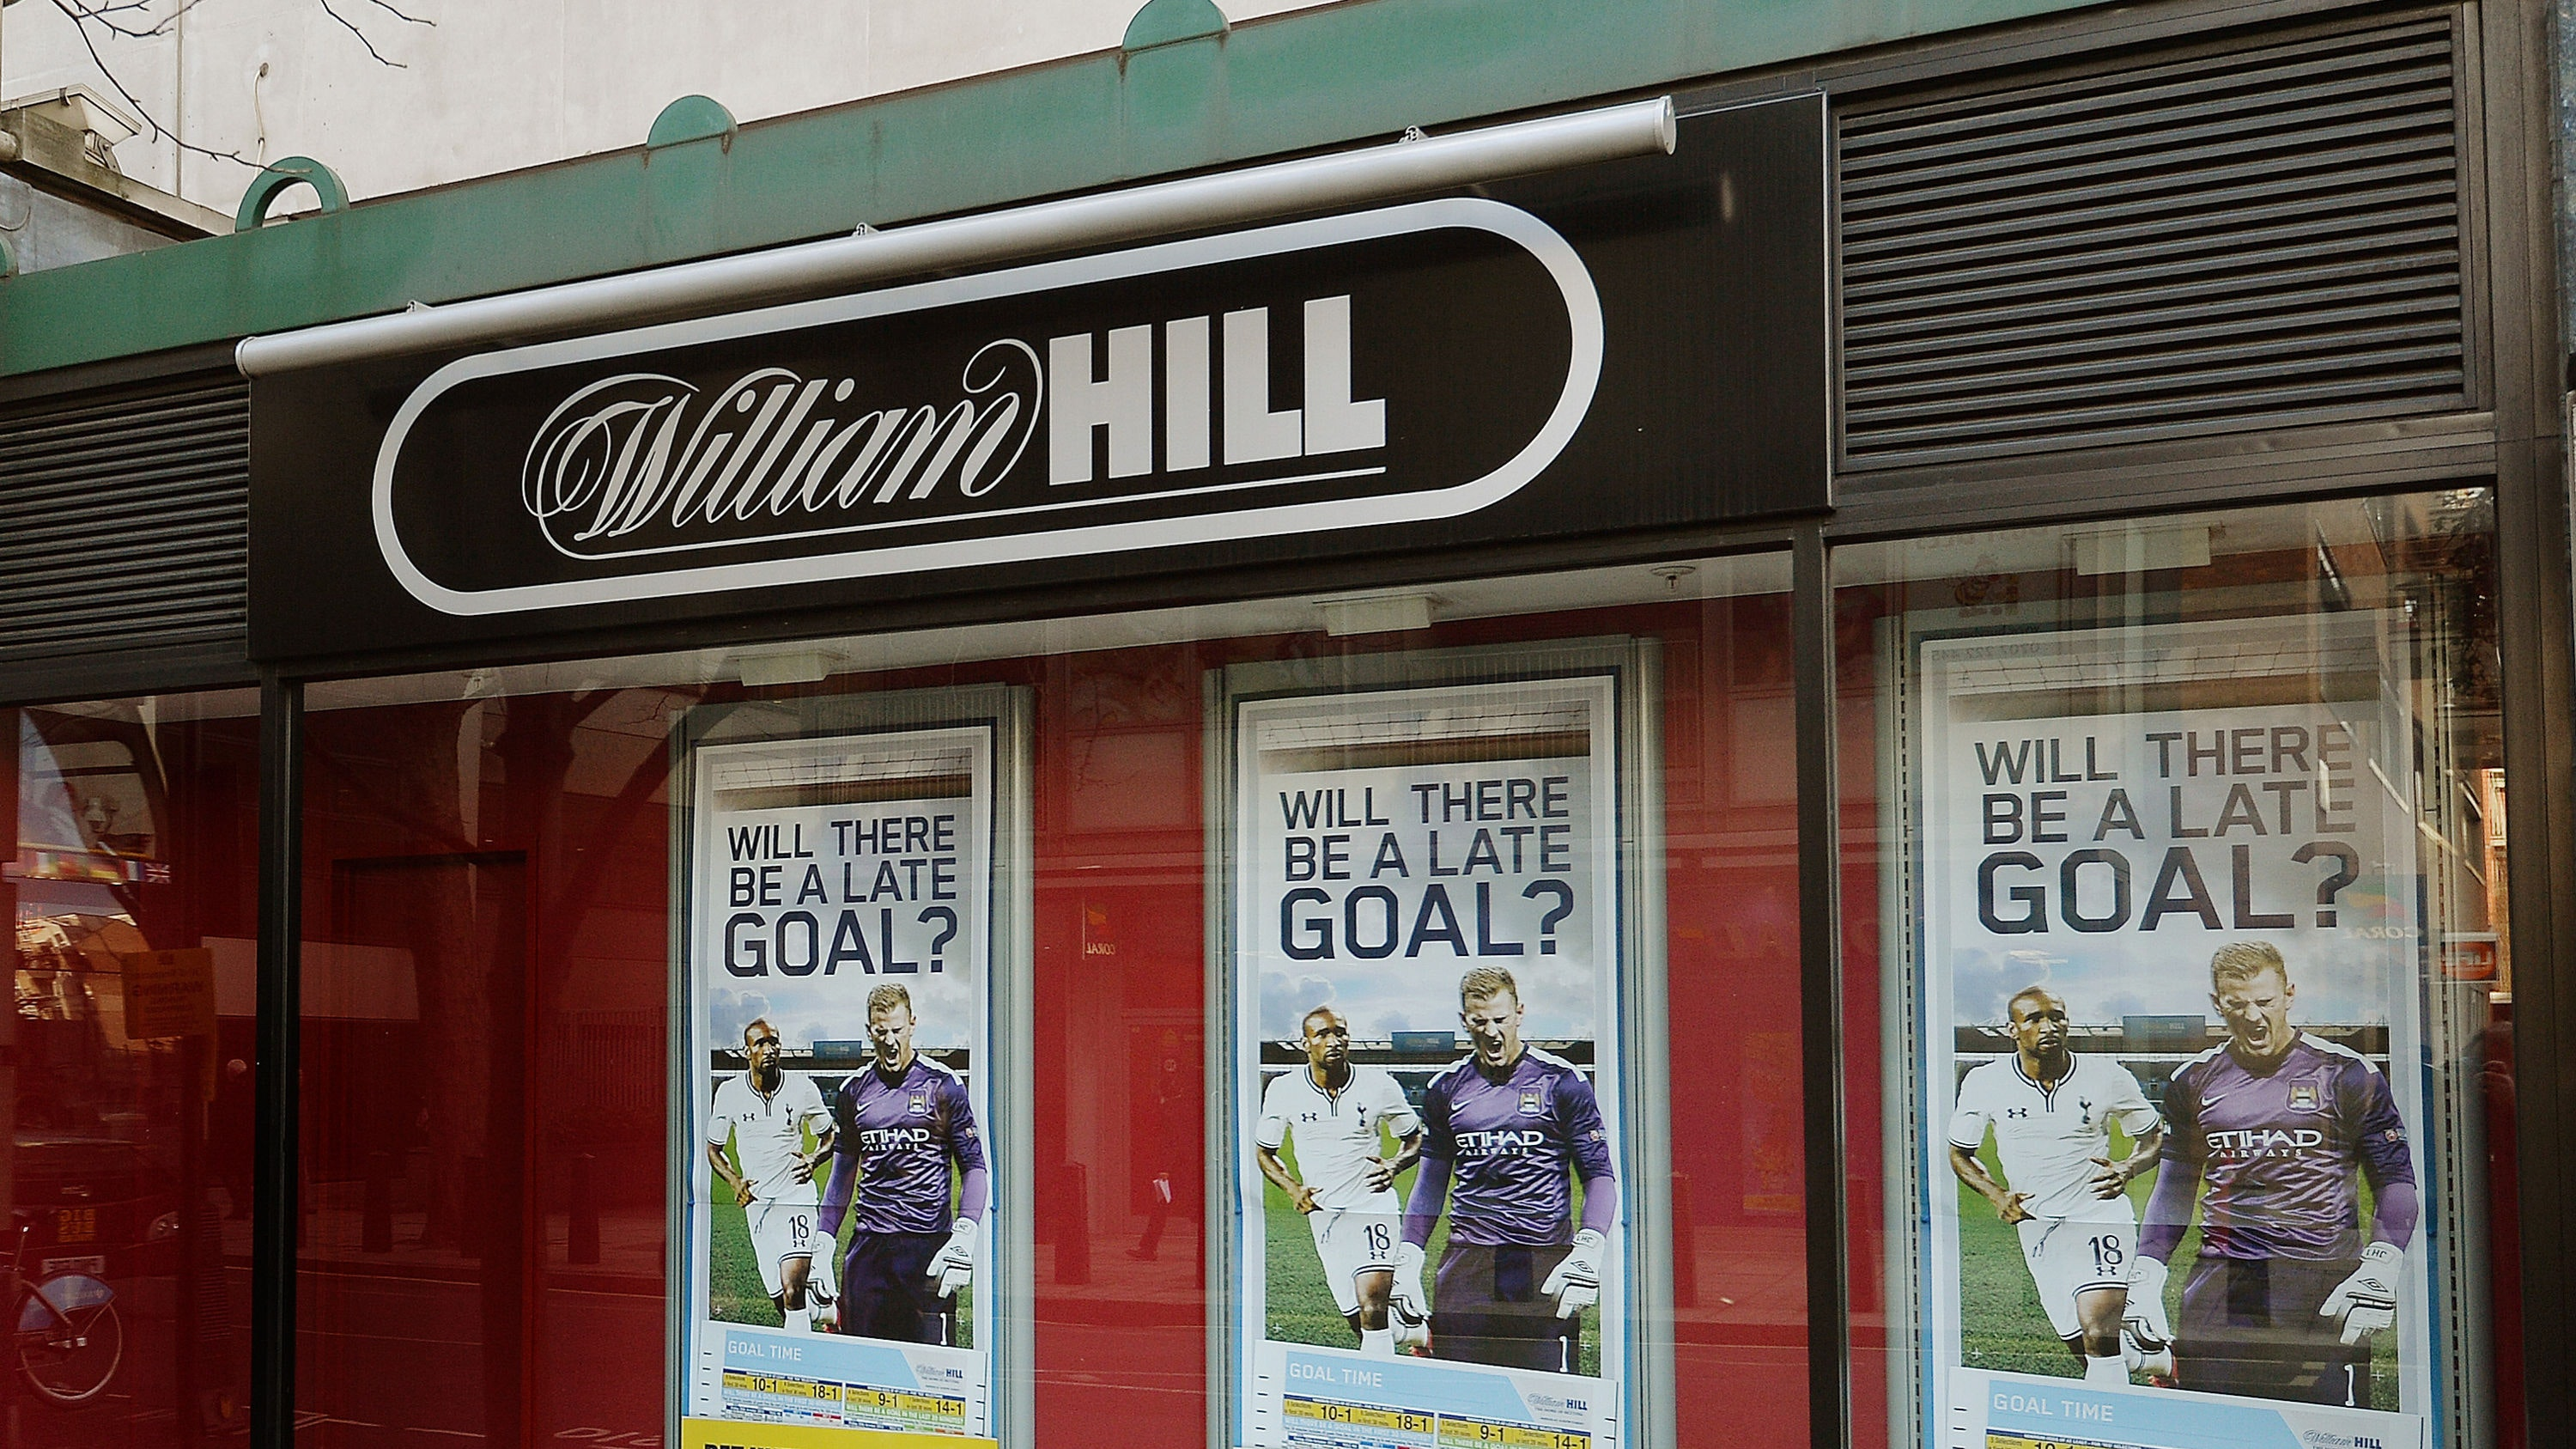 William Hill profit up 11% on online business, sporting results